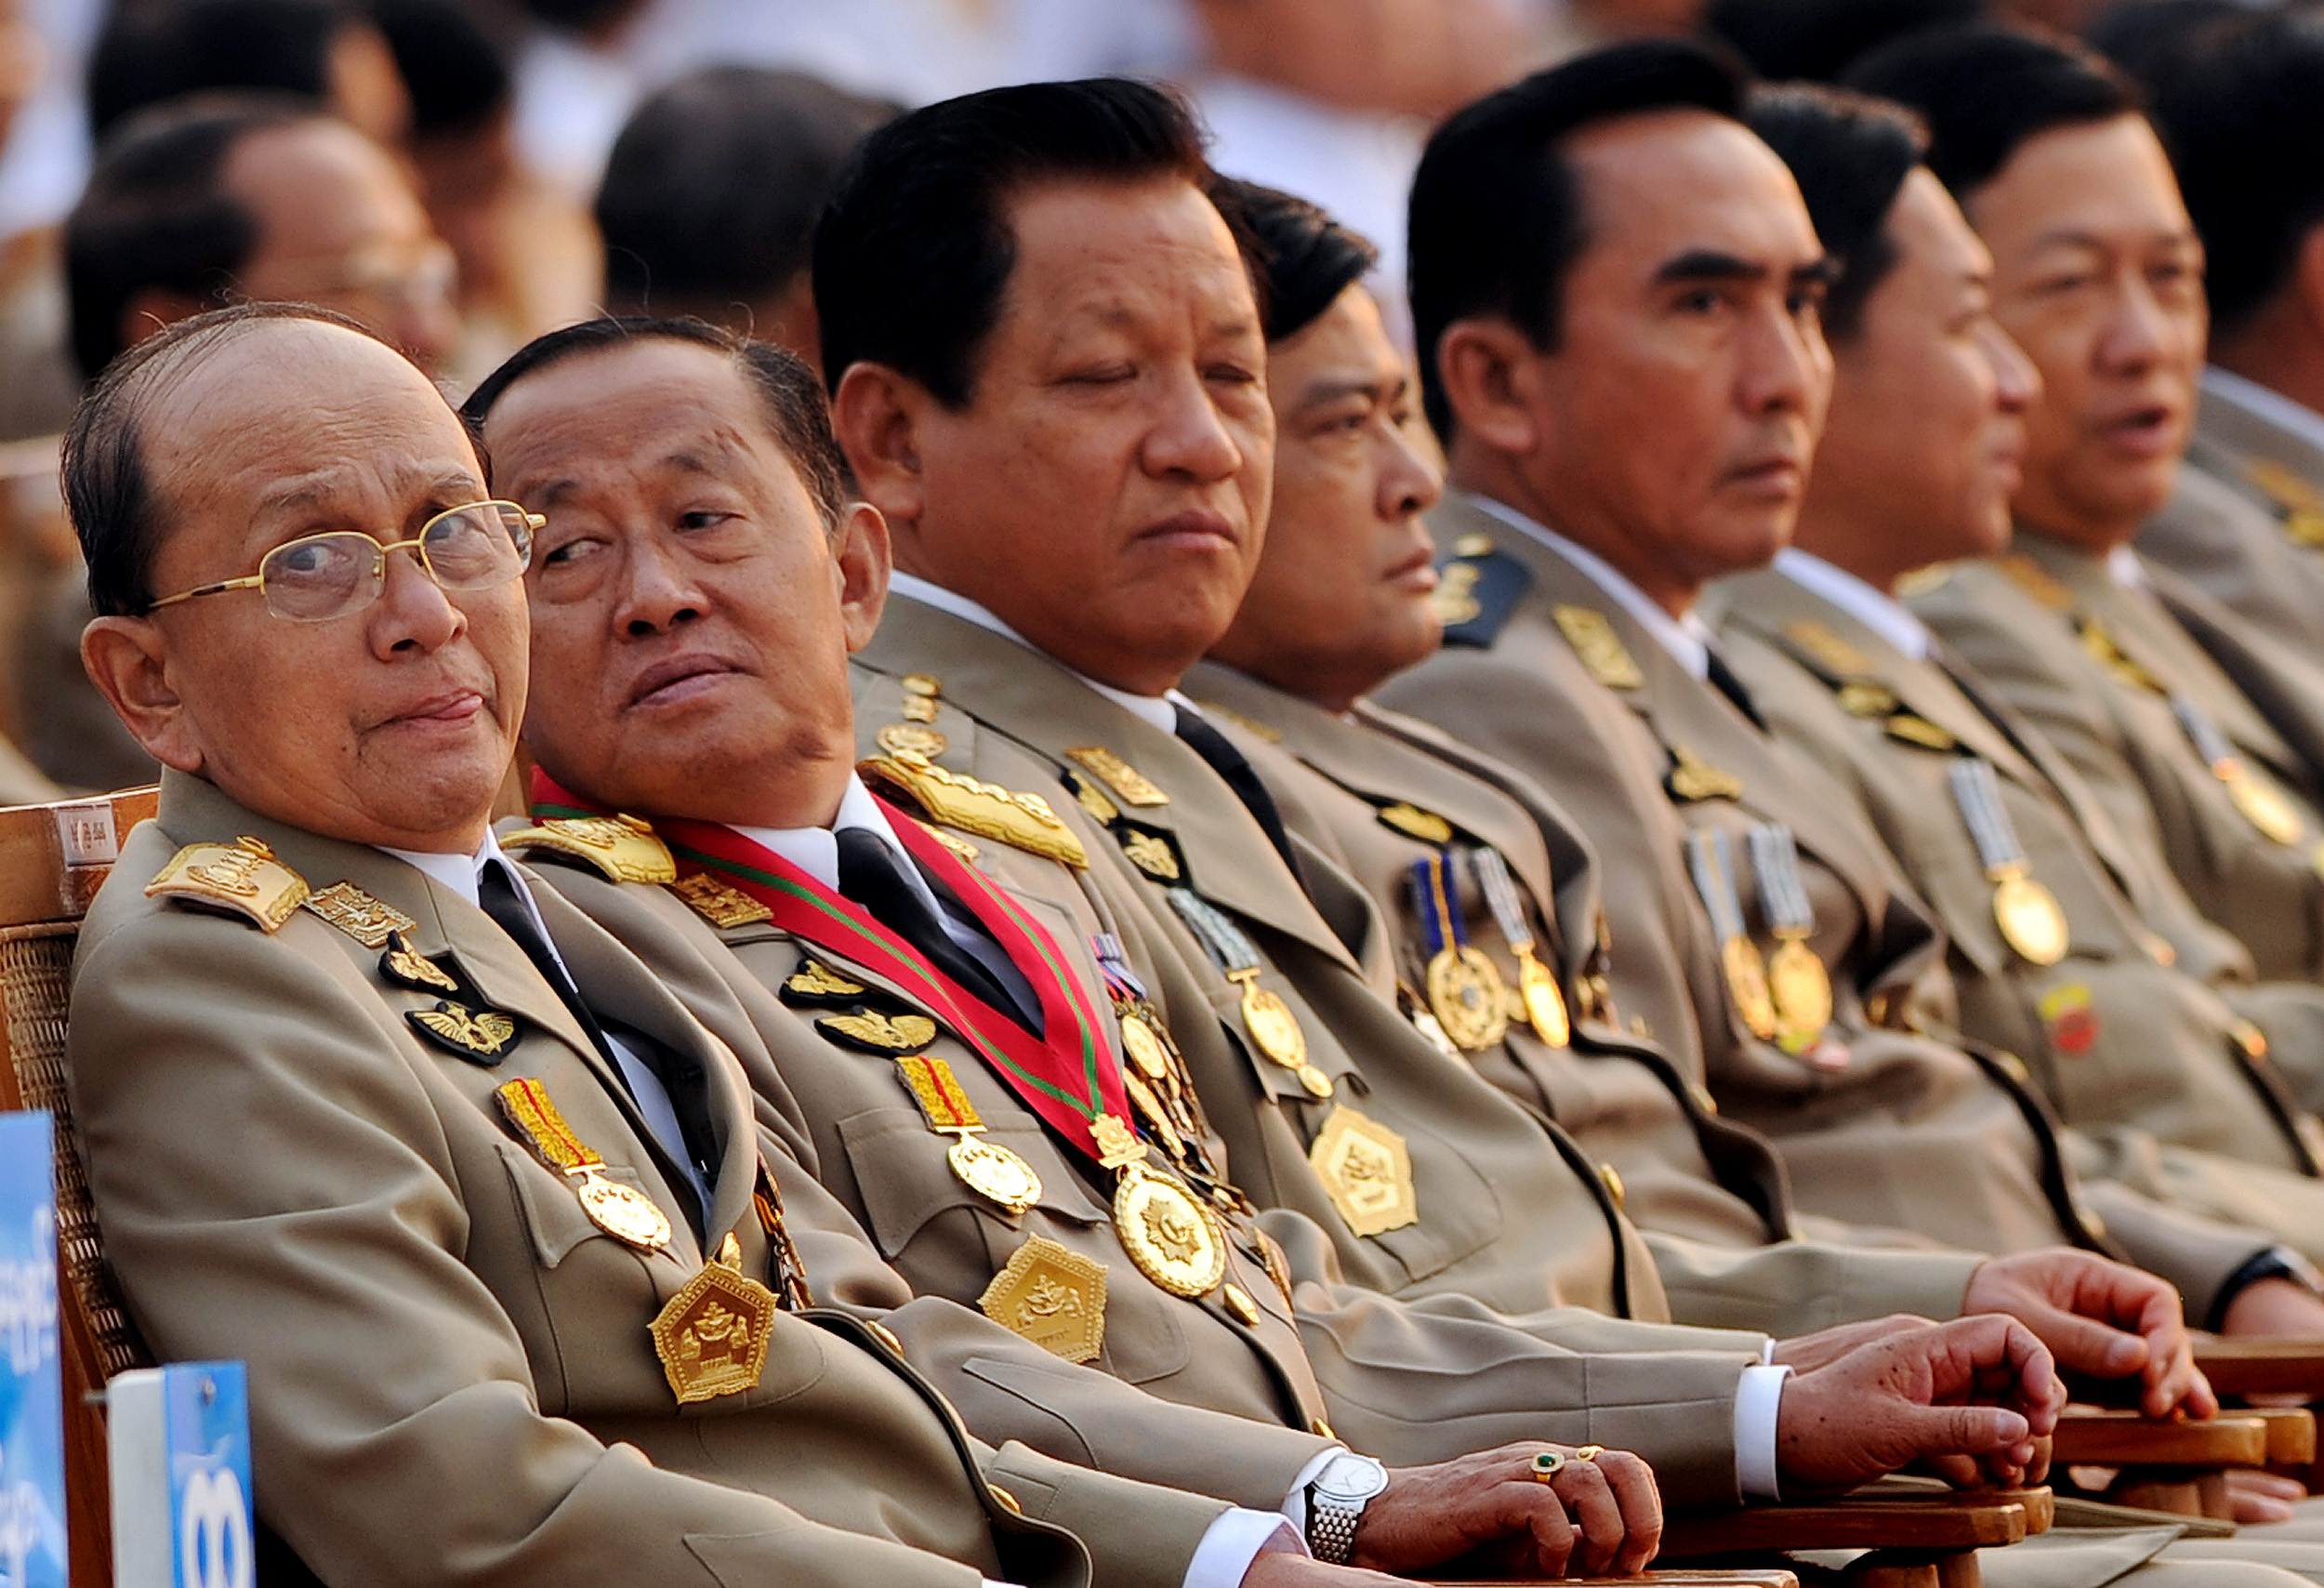 Thein Sein, left, along with senior leaders attends a military parade marking the country's 65th Armed Forces Day at a parade ground in Nay Pyi Taw on March 27, 2010. (Christophe Archambault / AFP)